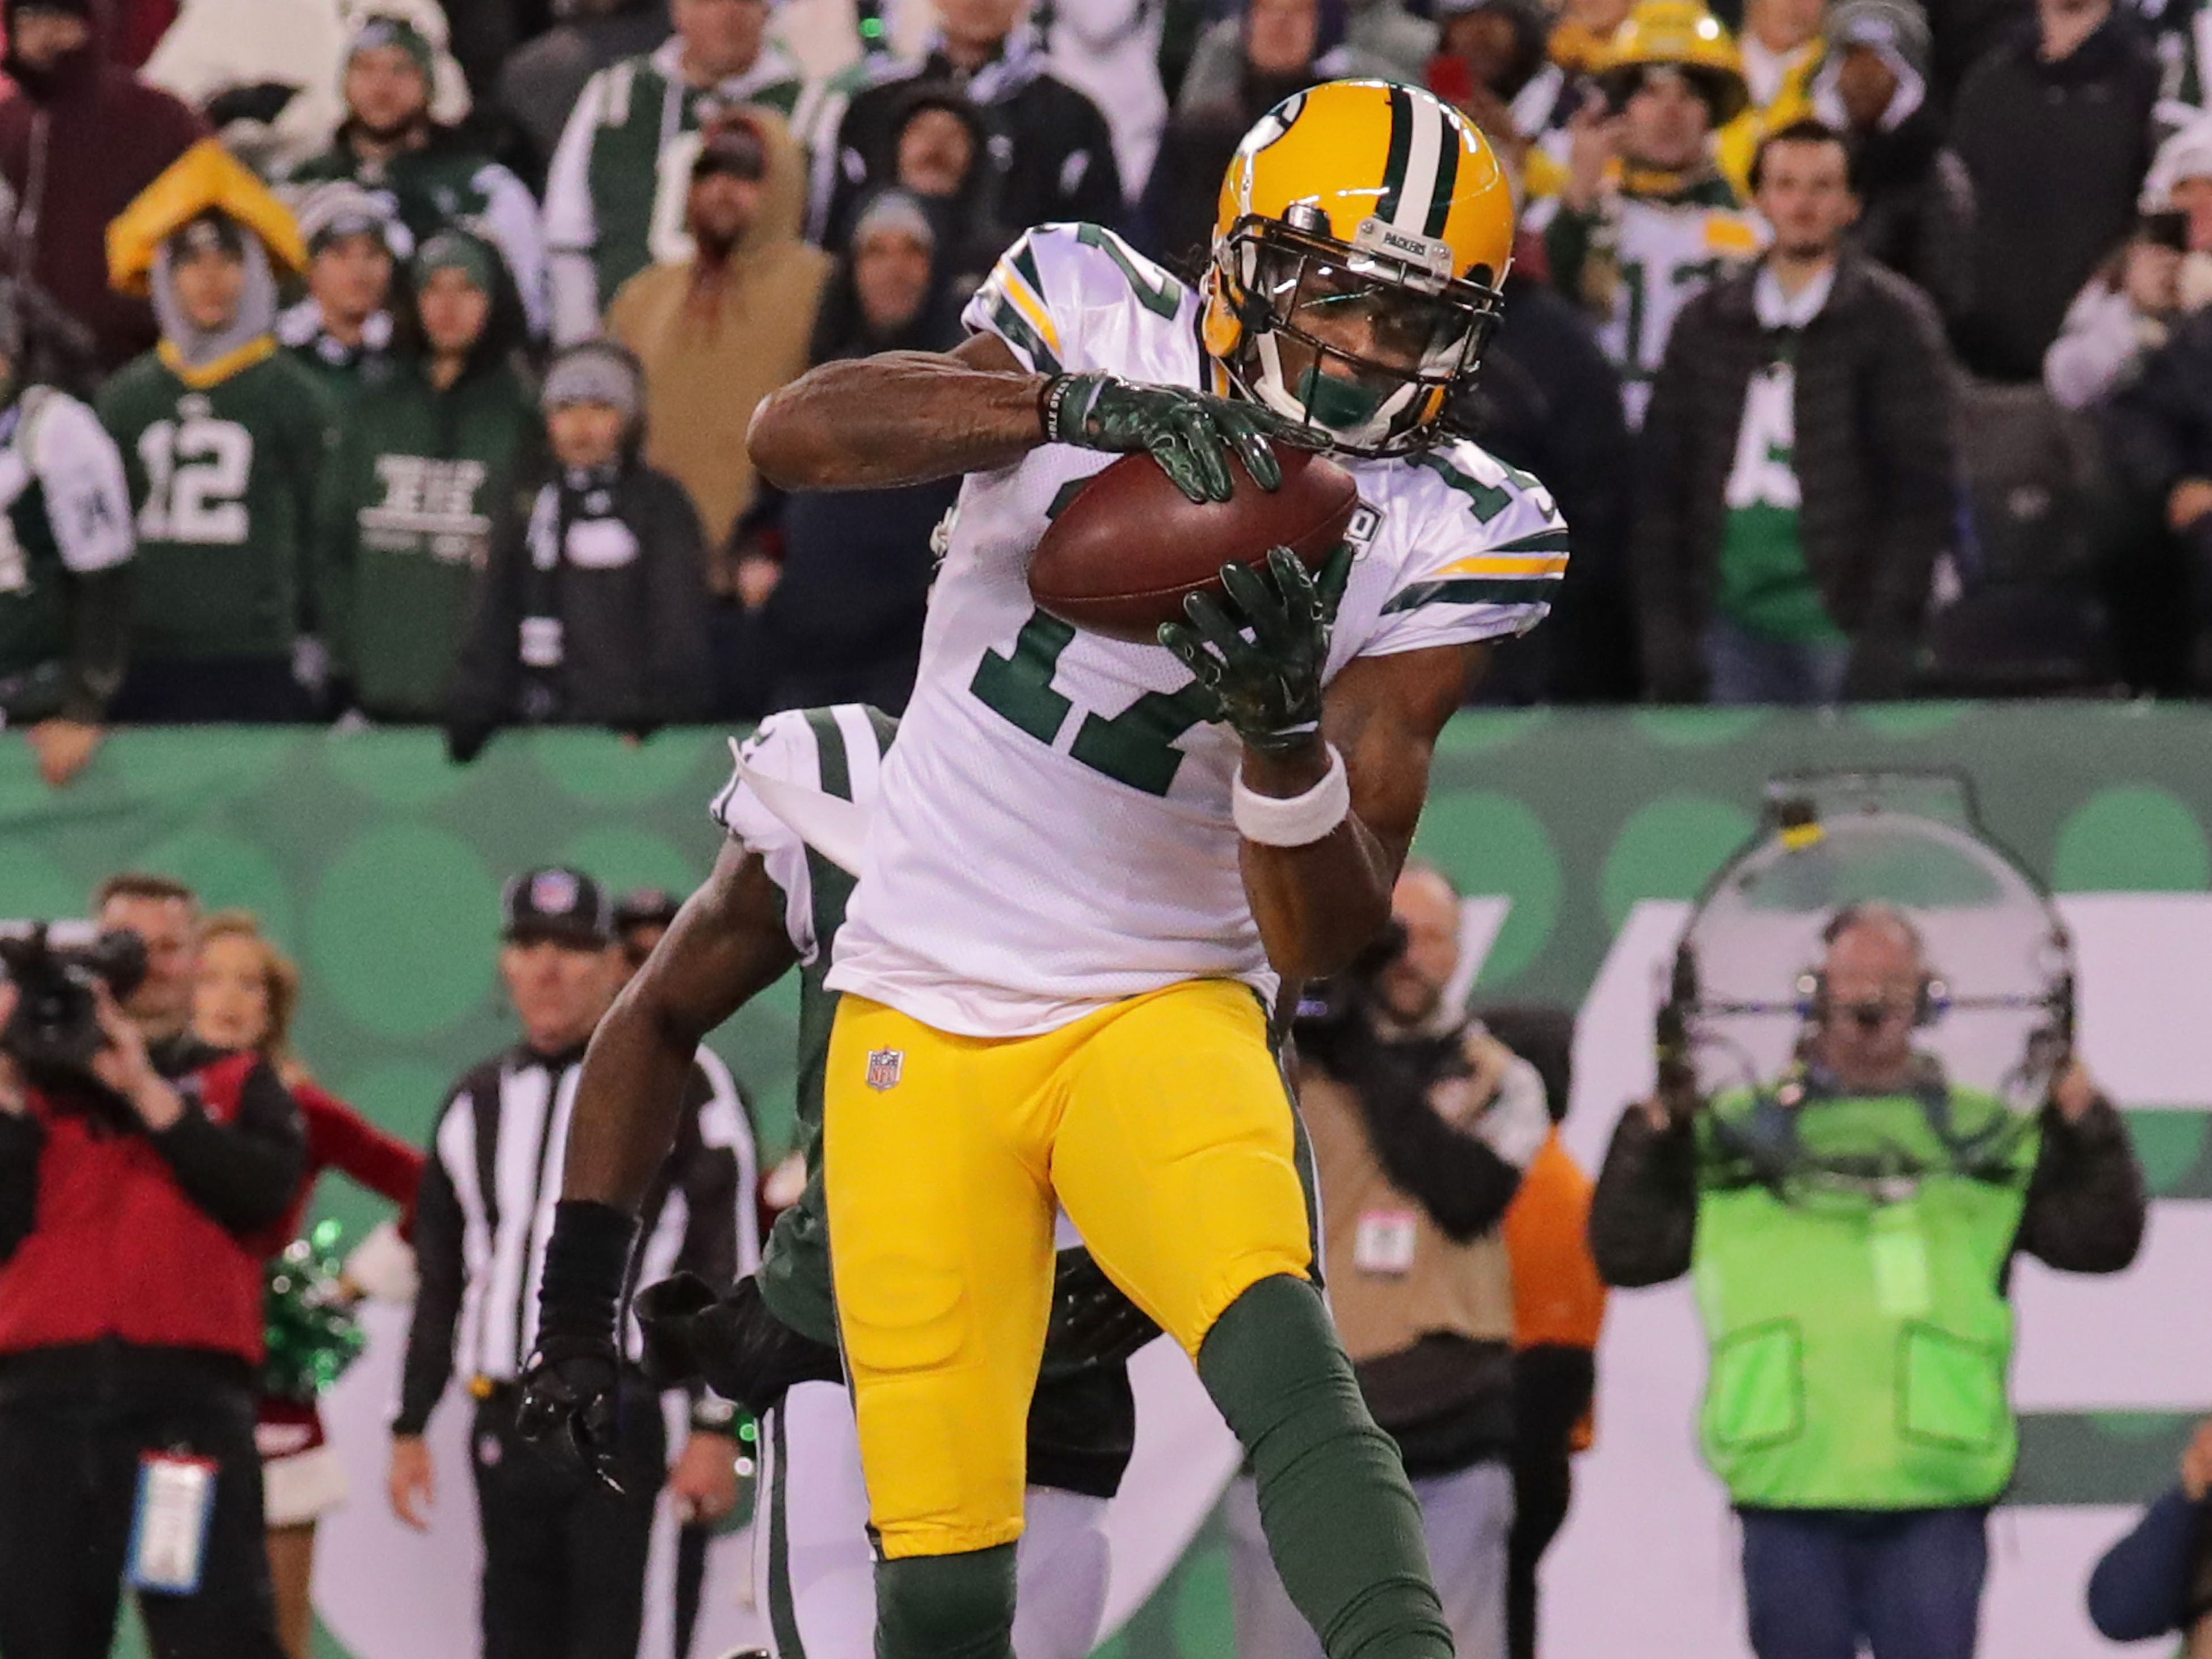 Green Bay Packers' Davante Adams catches the game winning catch past New York Jets' Morris Claiborne during overtime of the of the Green Bay Packers 44-38 win against the New York Jets at MetLife Stadium Sunday, Dec. 23, 2018, in East Rutherford. l